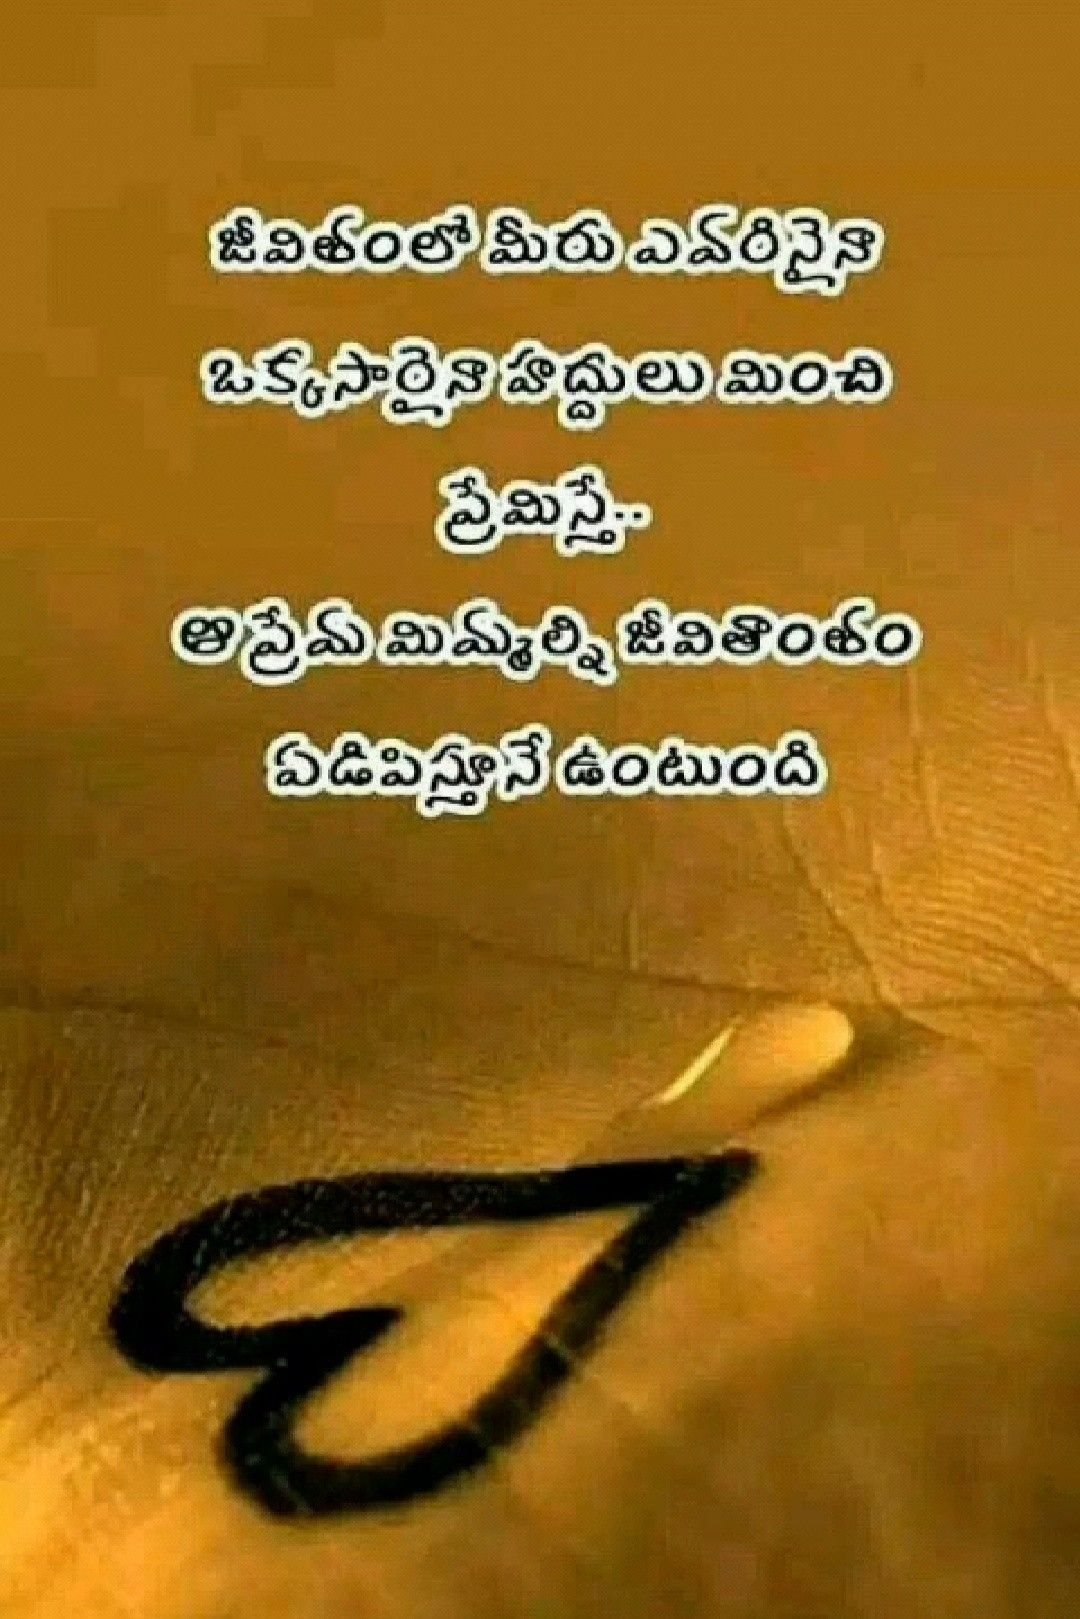 Love Quotes In Telugu Love Quotes In Telugu With Images Love Quotes In Telugu Telugu Inspirational Quotes Love Quotes For Girlfriend